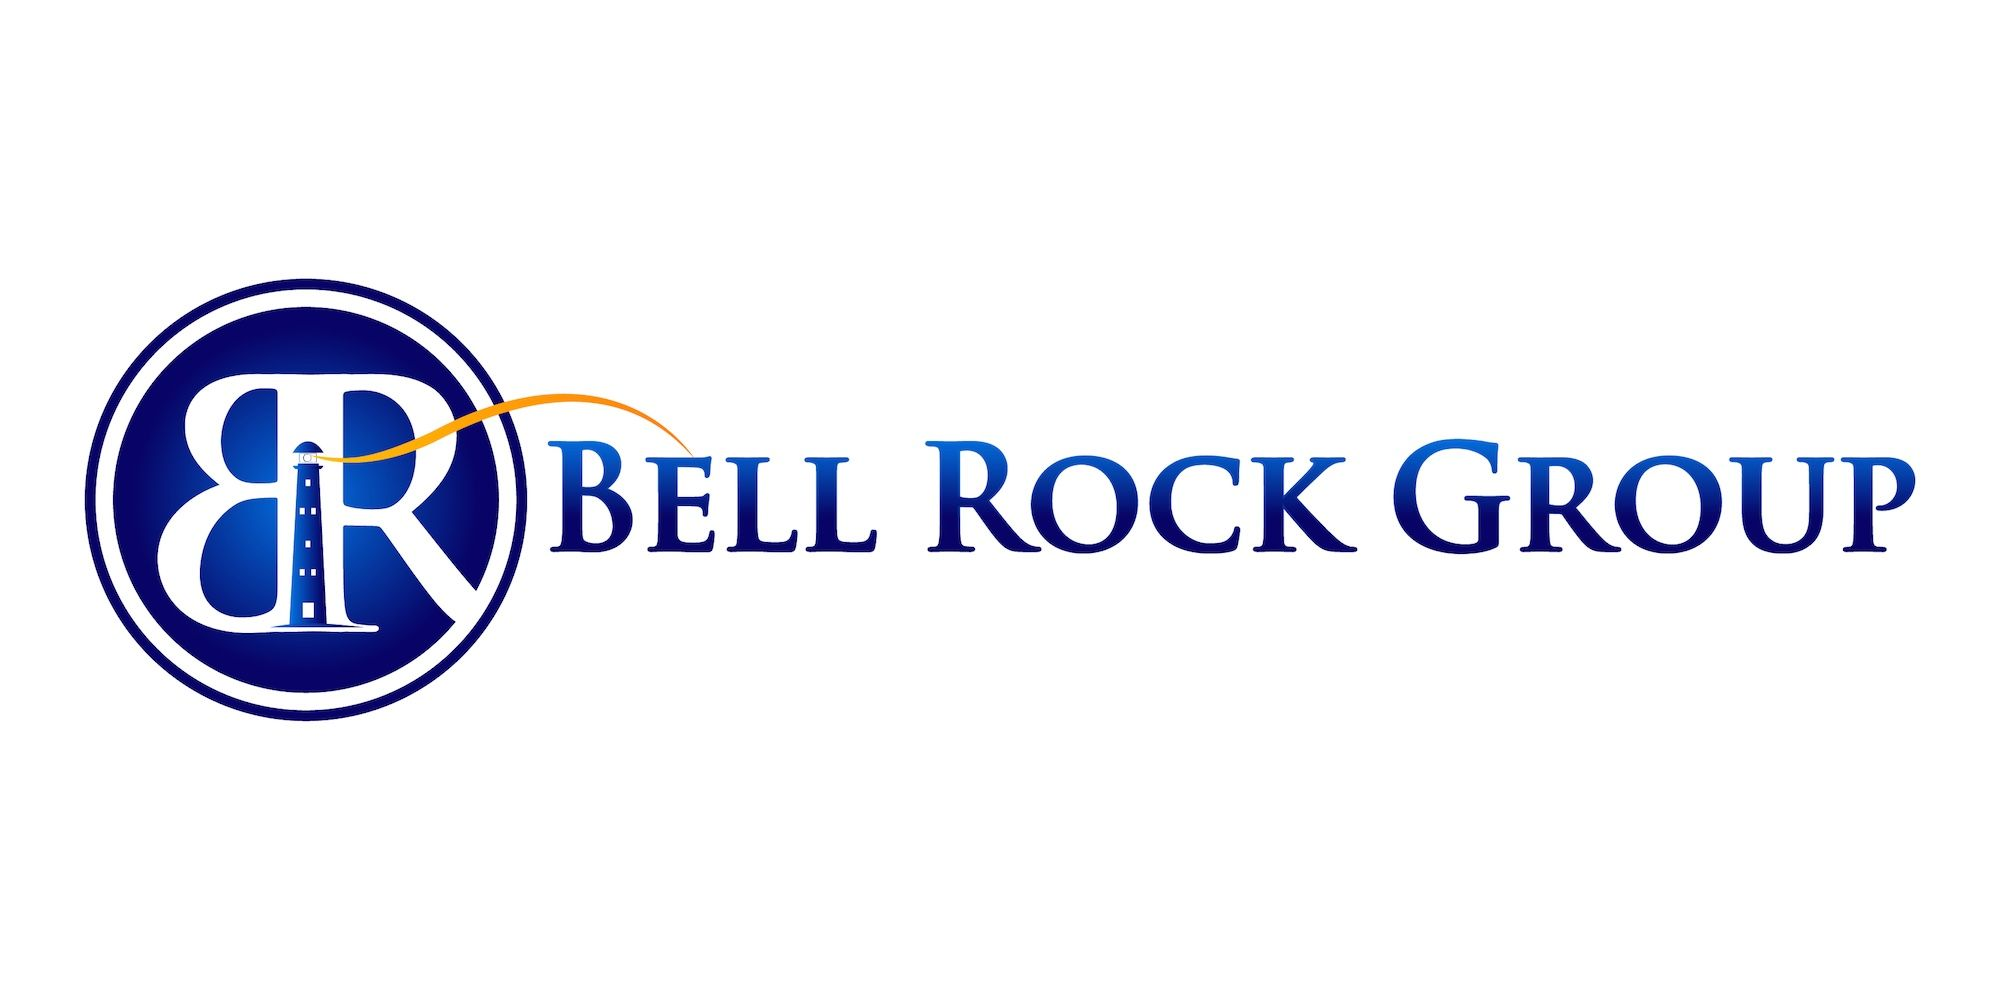 Bell Rock Group Logo